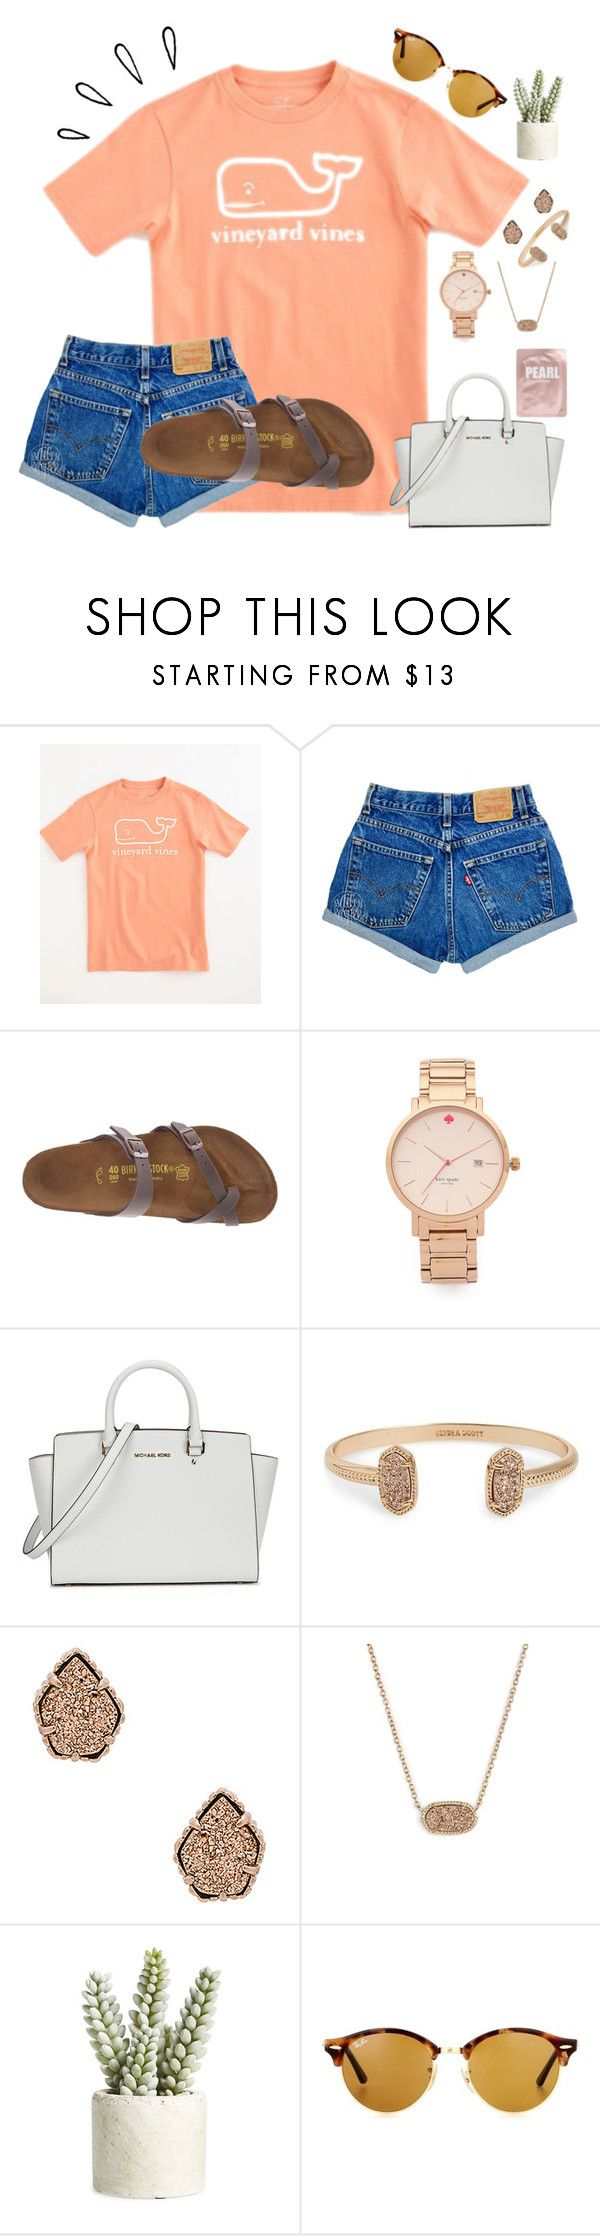 """~shoutout set::rtd~"" by taybug2147 ❤ liked on Polyvore featuring Vineyard Vines, Birkenstock, Old Navy, Kate Spade, Michael Kors, Kendra Scott, Allstate Floral, Ray-Ban and Lapcos"